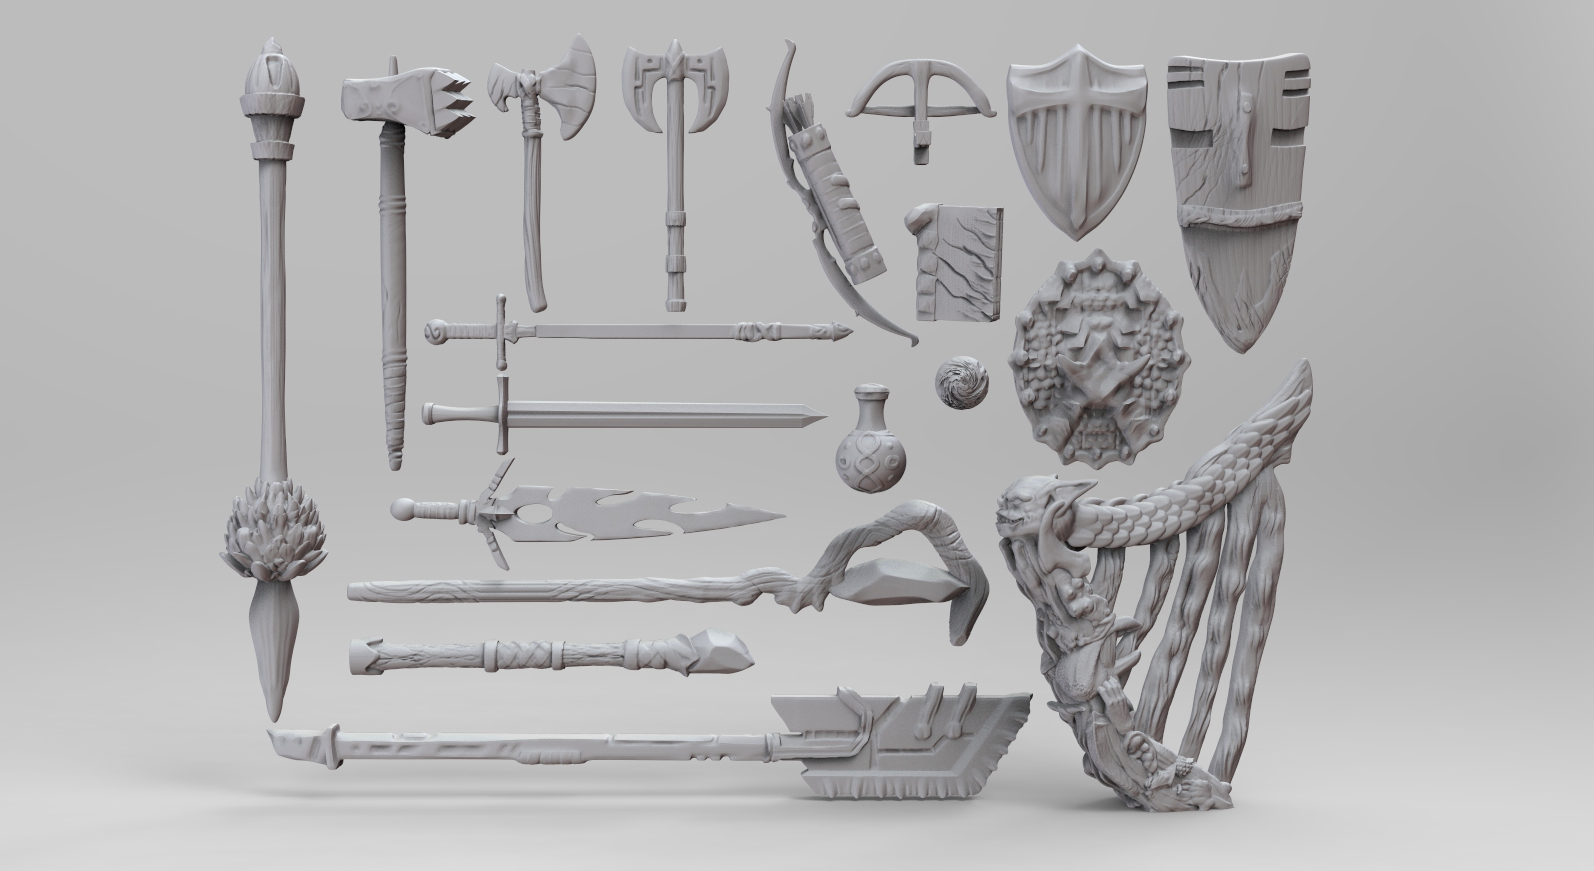 Weapons Bundle Released! - Now available for all $3+ supporters! Can be found under ZBrush Files folder. I'm so excited to see what you all make with these! Don't forget to read the Terms and Conditions too :) It sounds harsh, but that's just how legal stuff is. Please use these assets and have fun!!